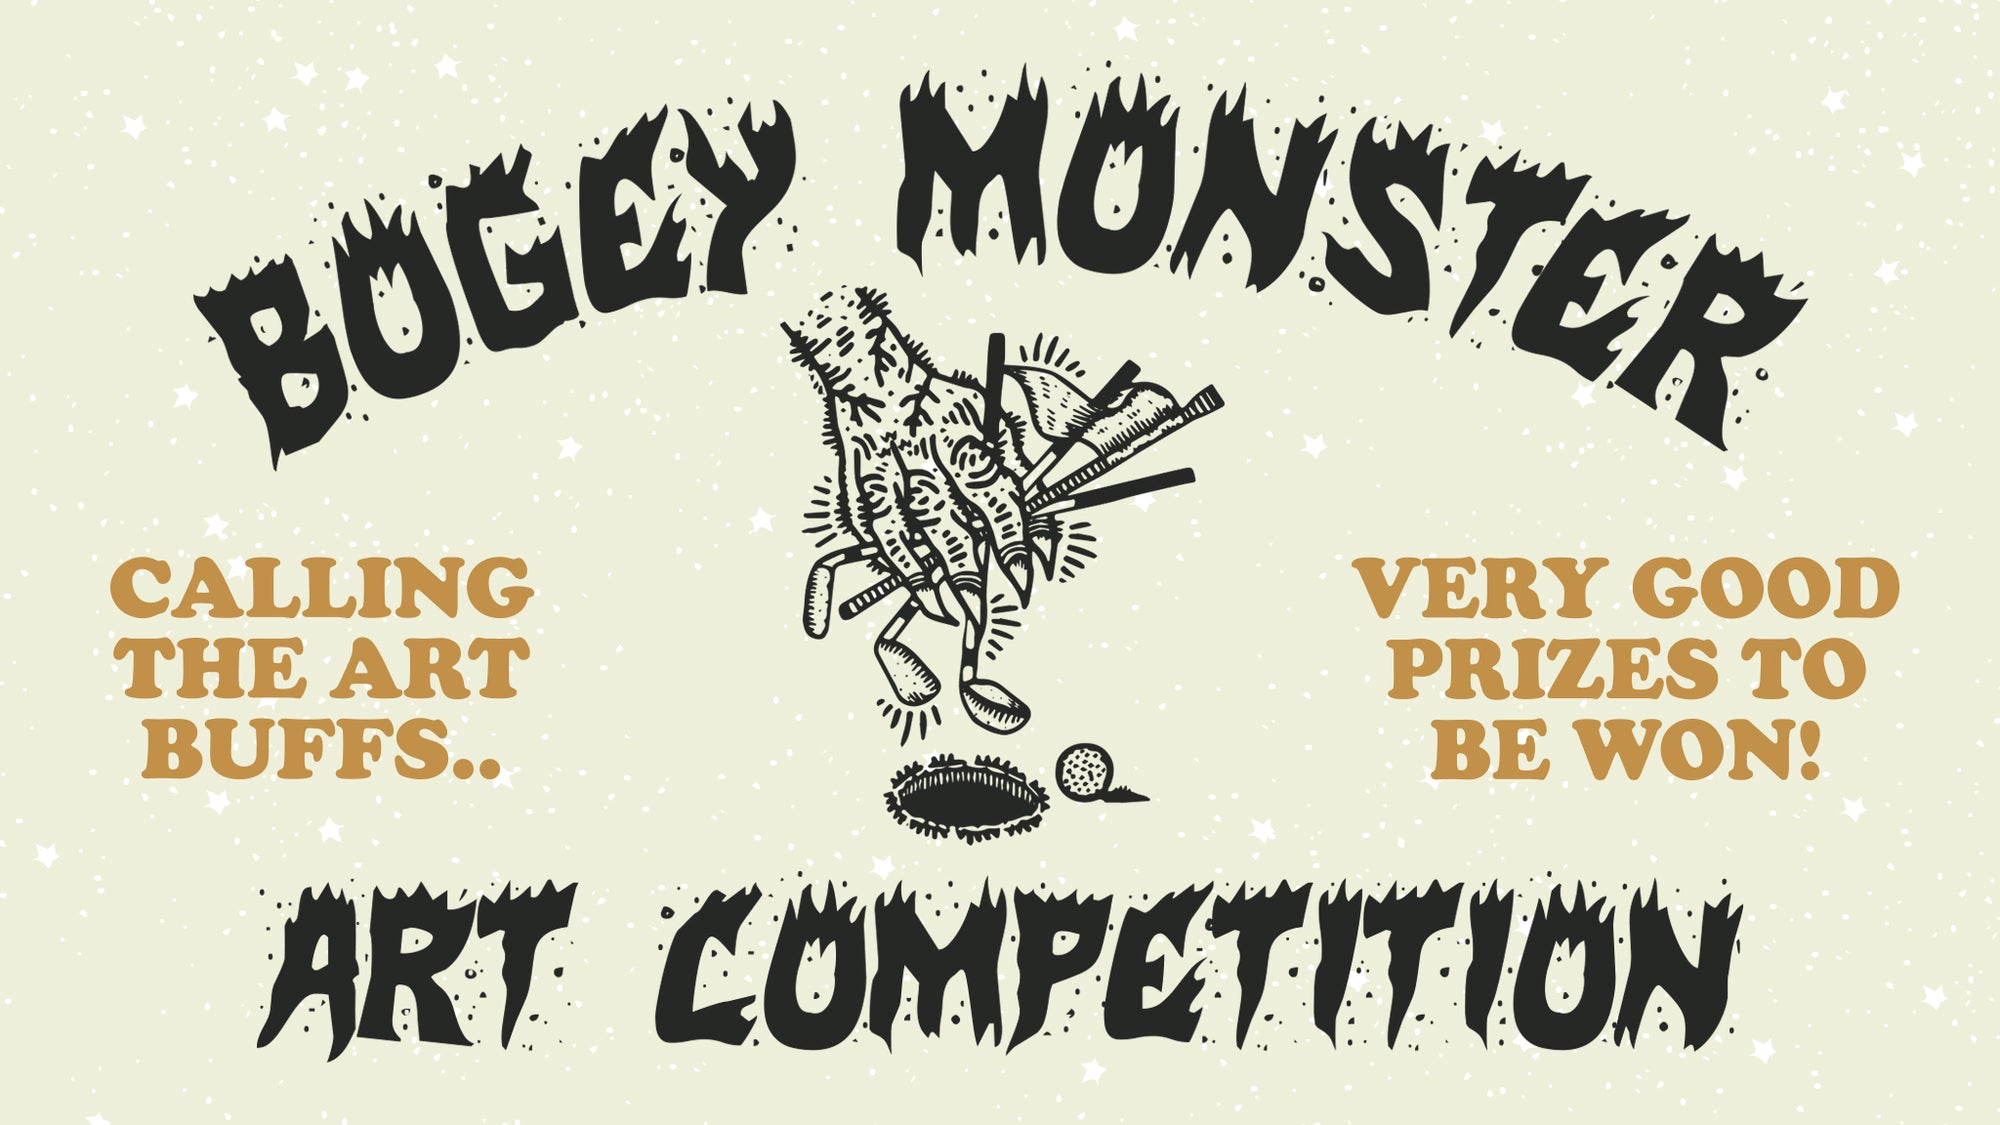 birds of condor bogey monster art competition